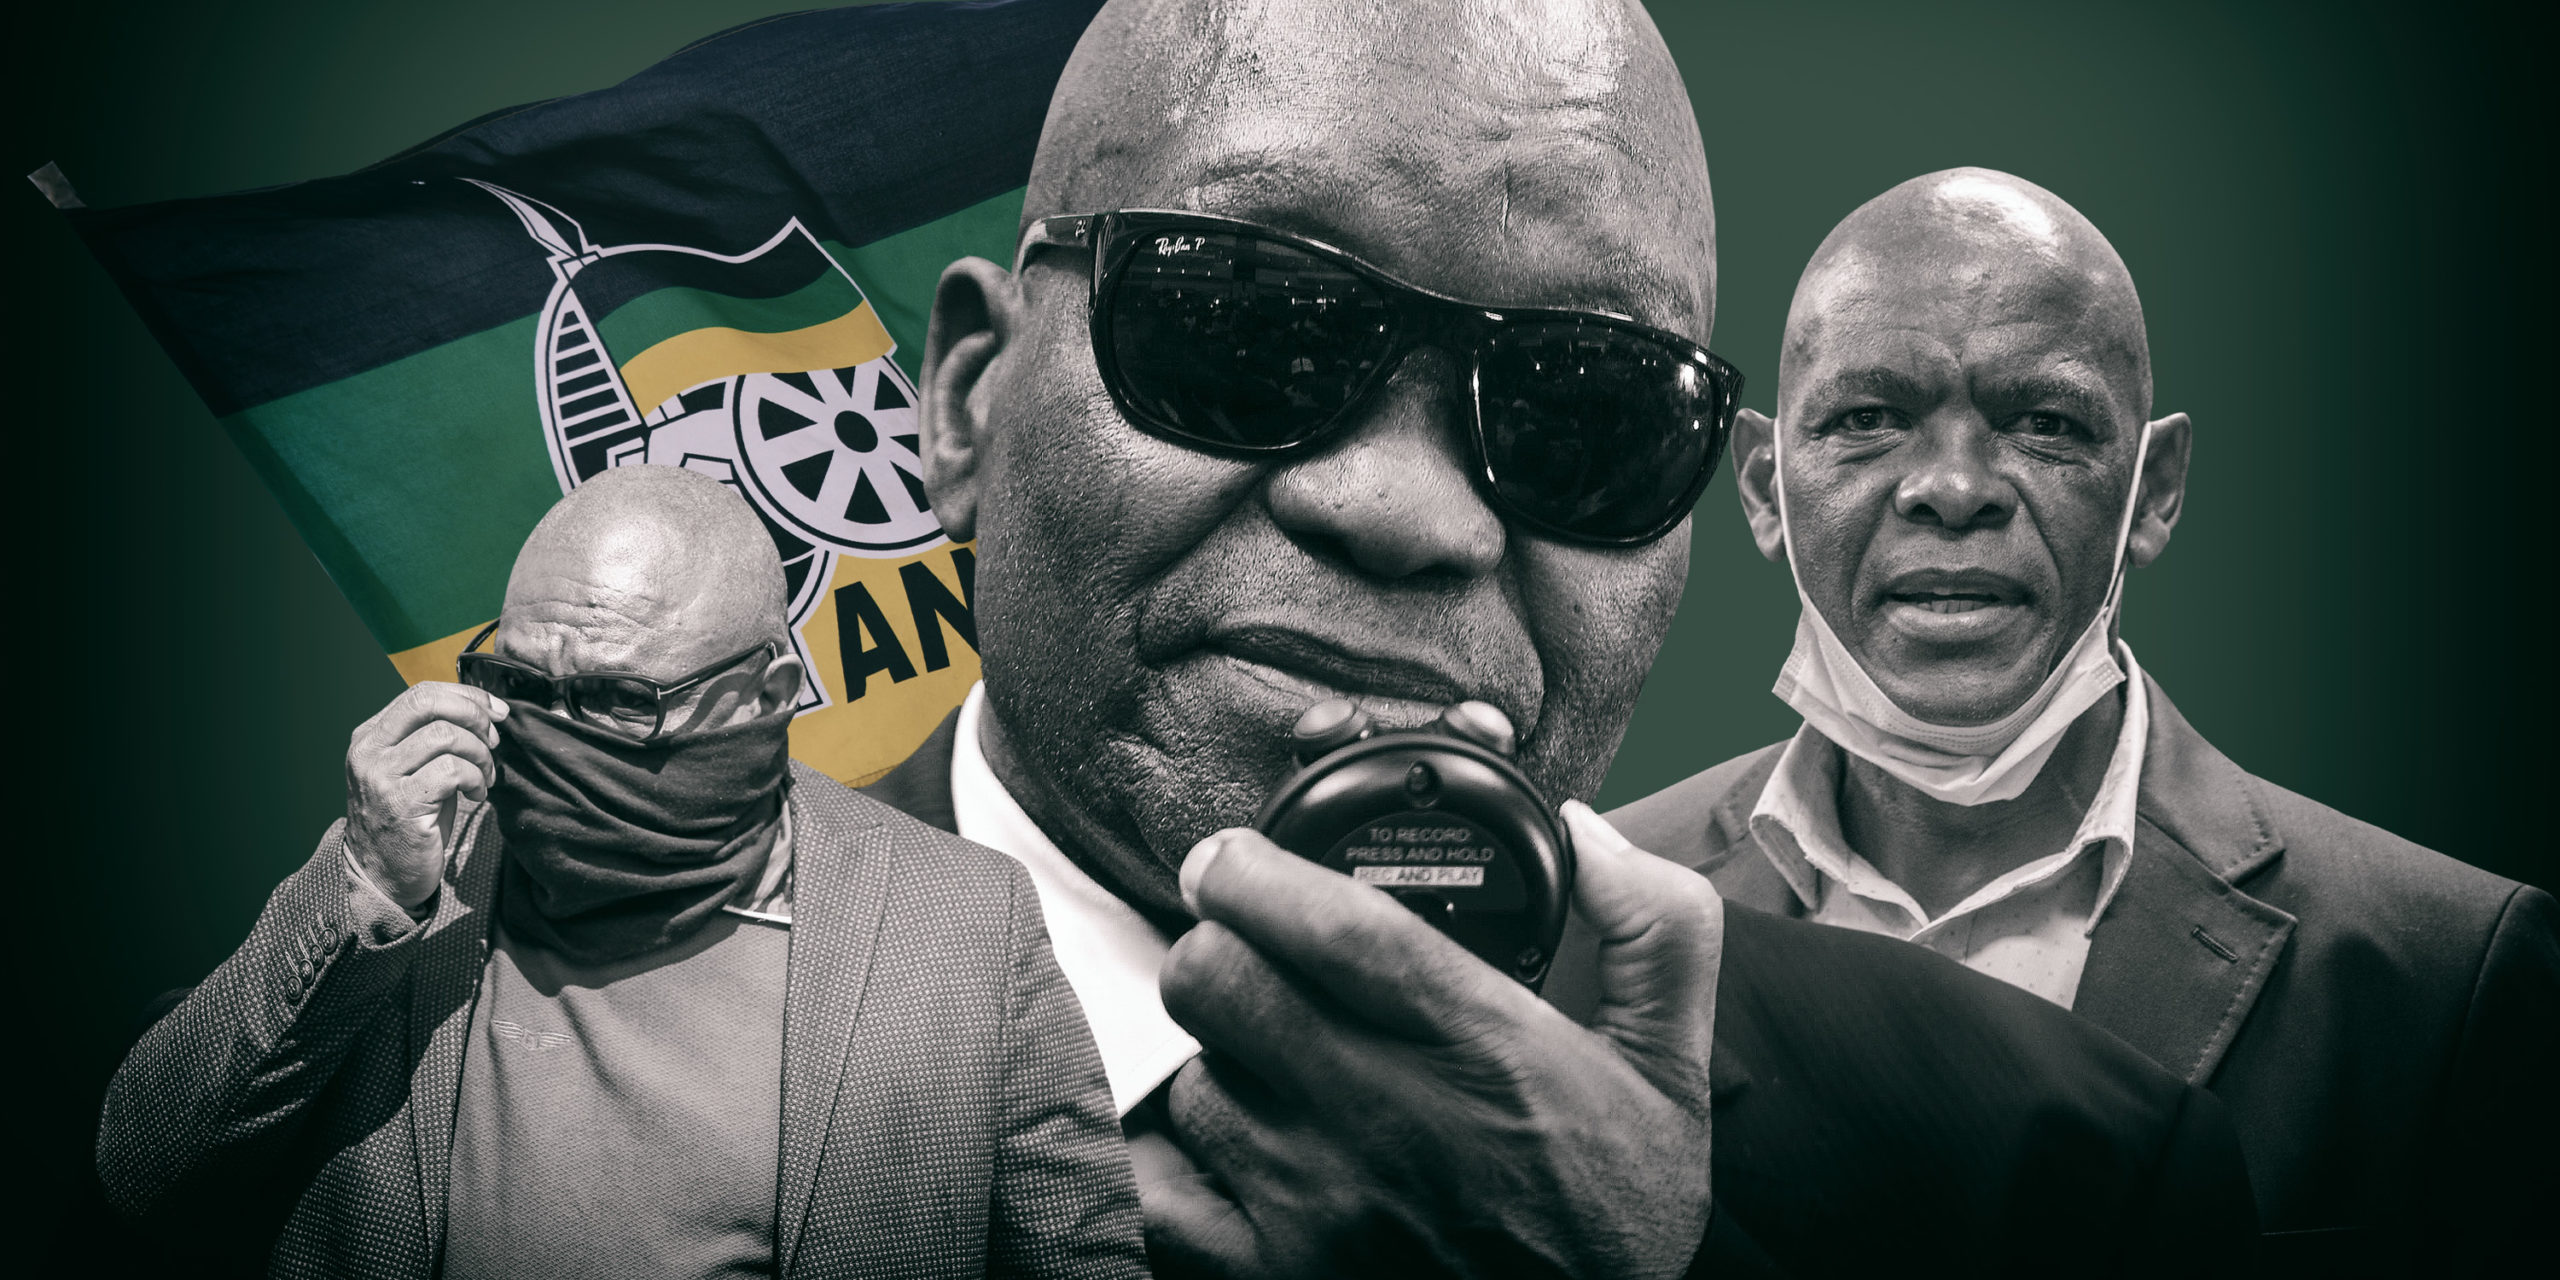 ANALYSIS: South Africans' trust in ANC's empty anti-corruption words runneth over